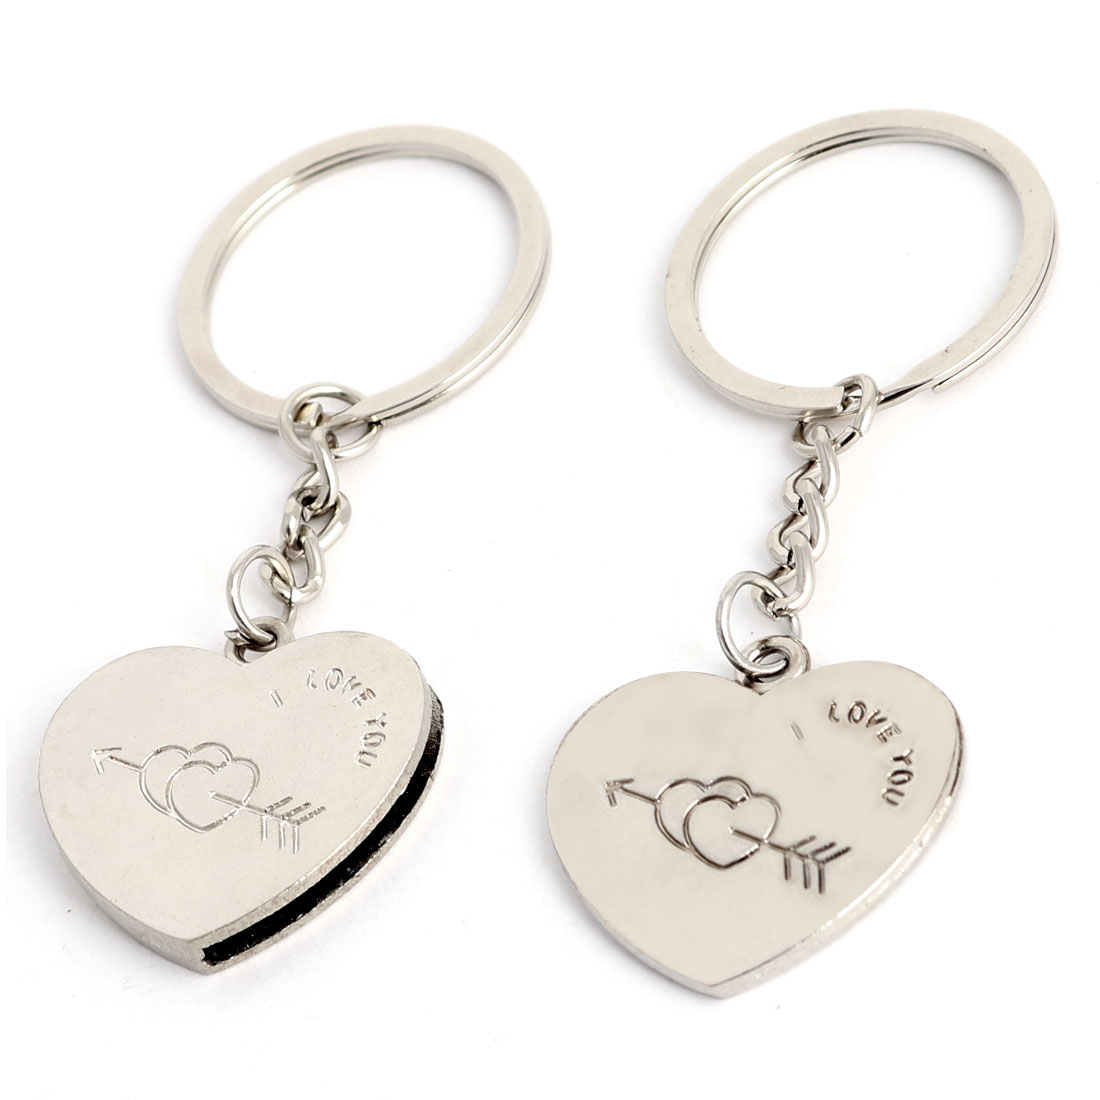 Stainless Steel Heart Shaped Pendant Keyring Silver Tone Pair for Lovers